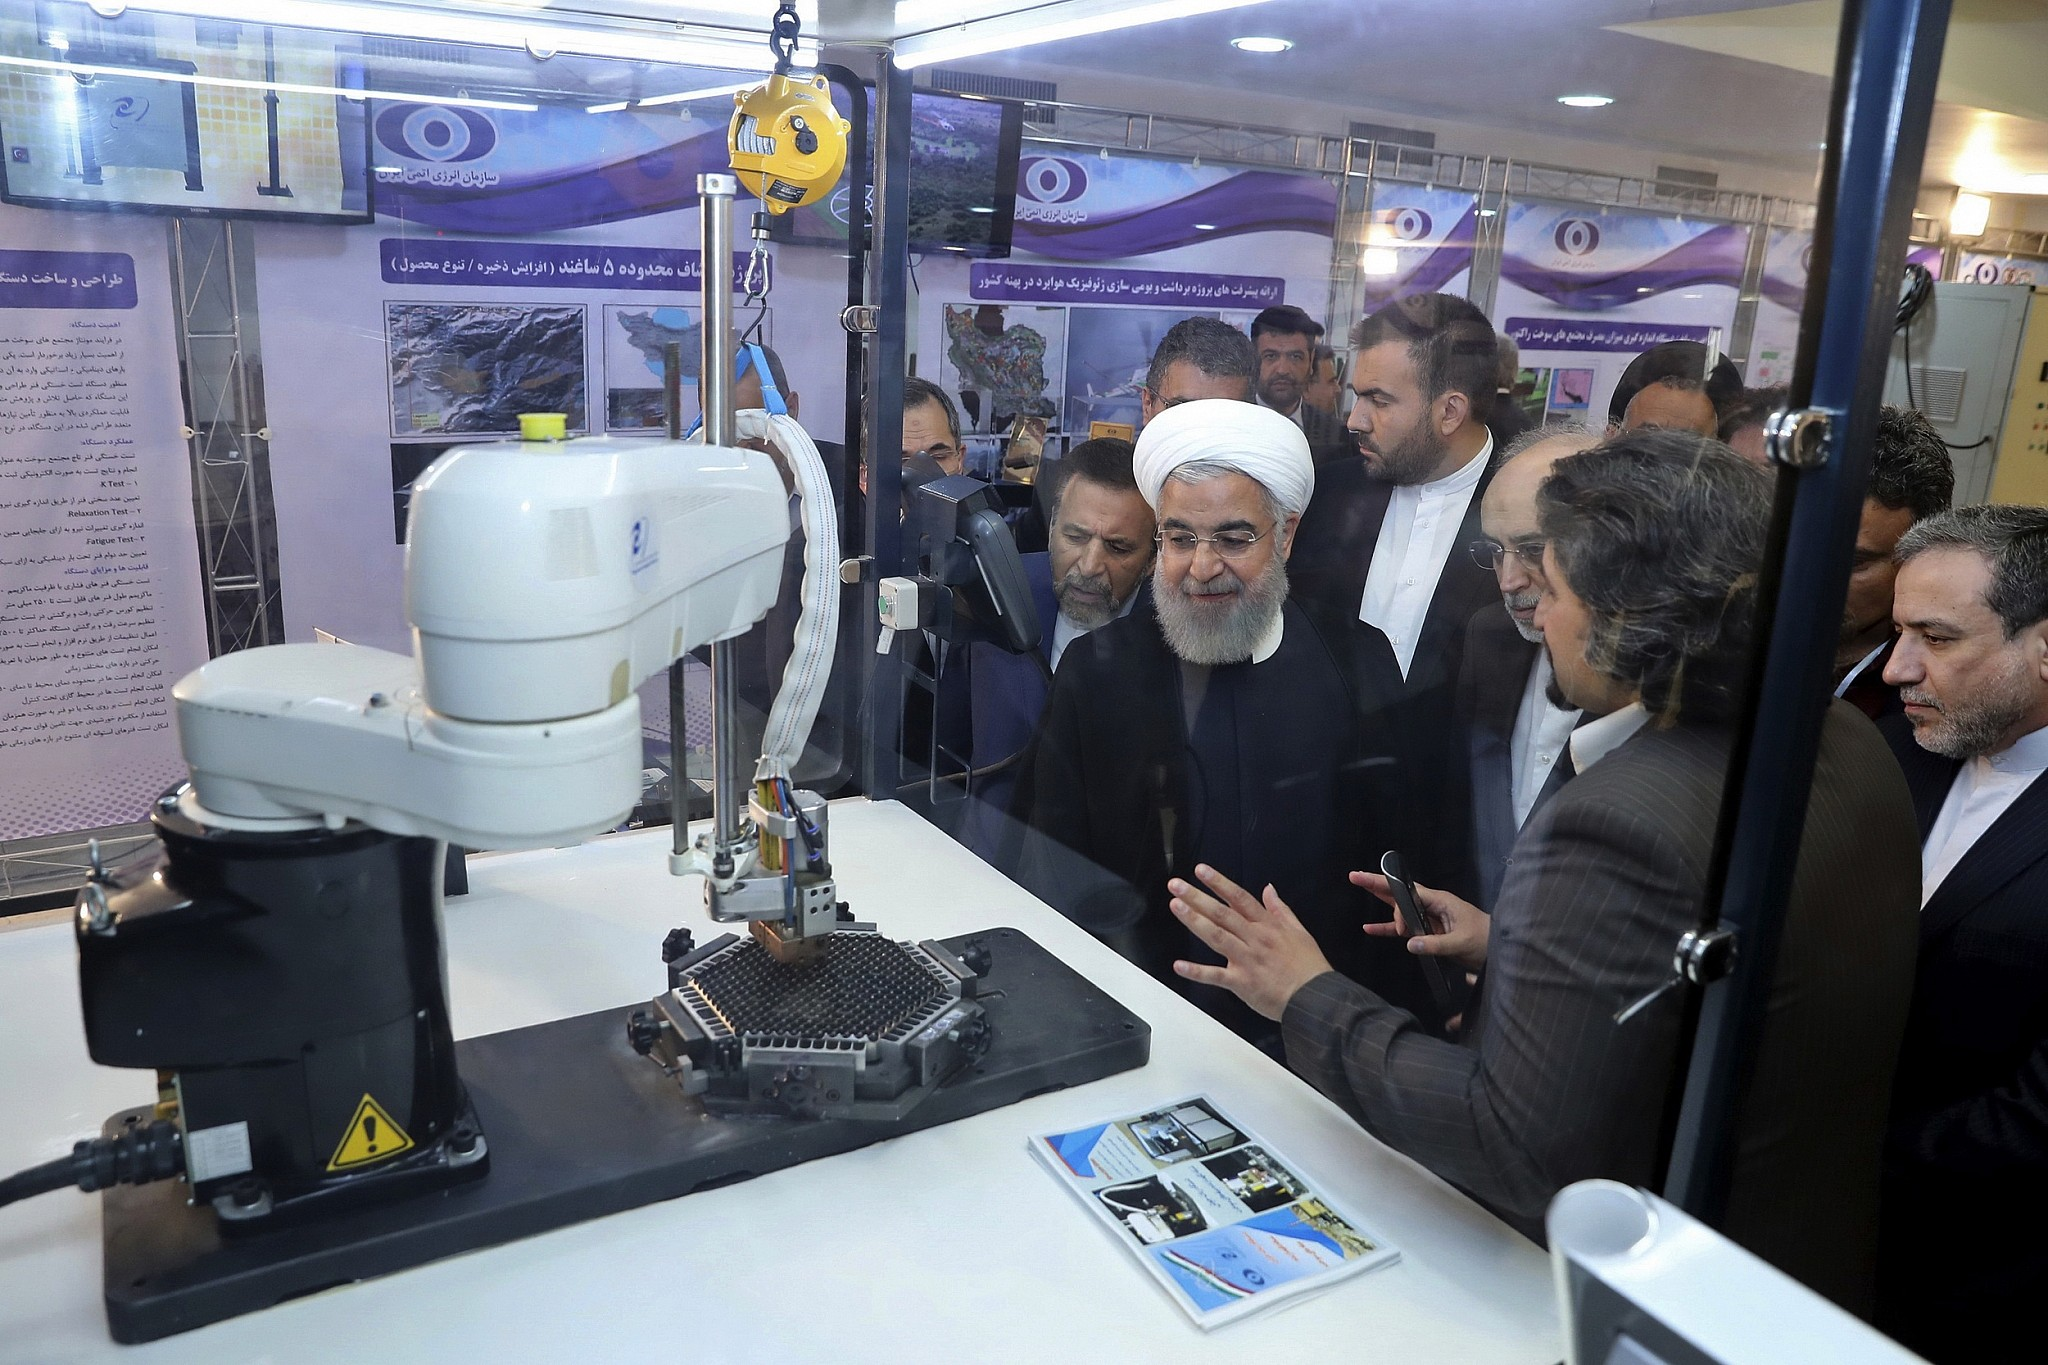 Iran president: If US scraps nuke deal, they'll see impact